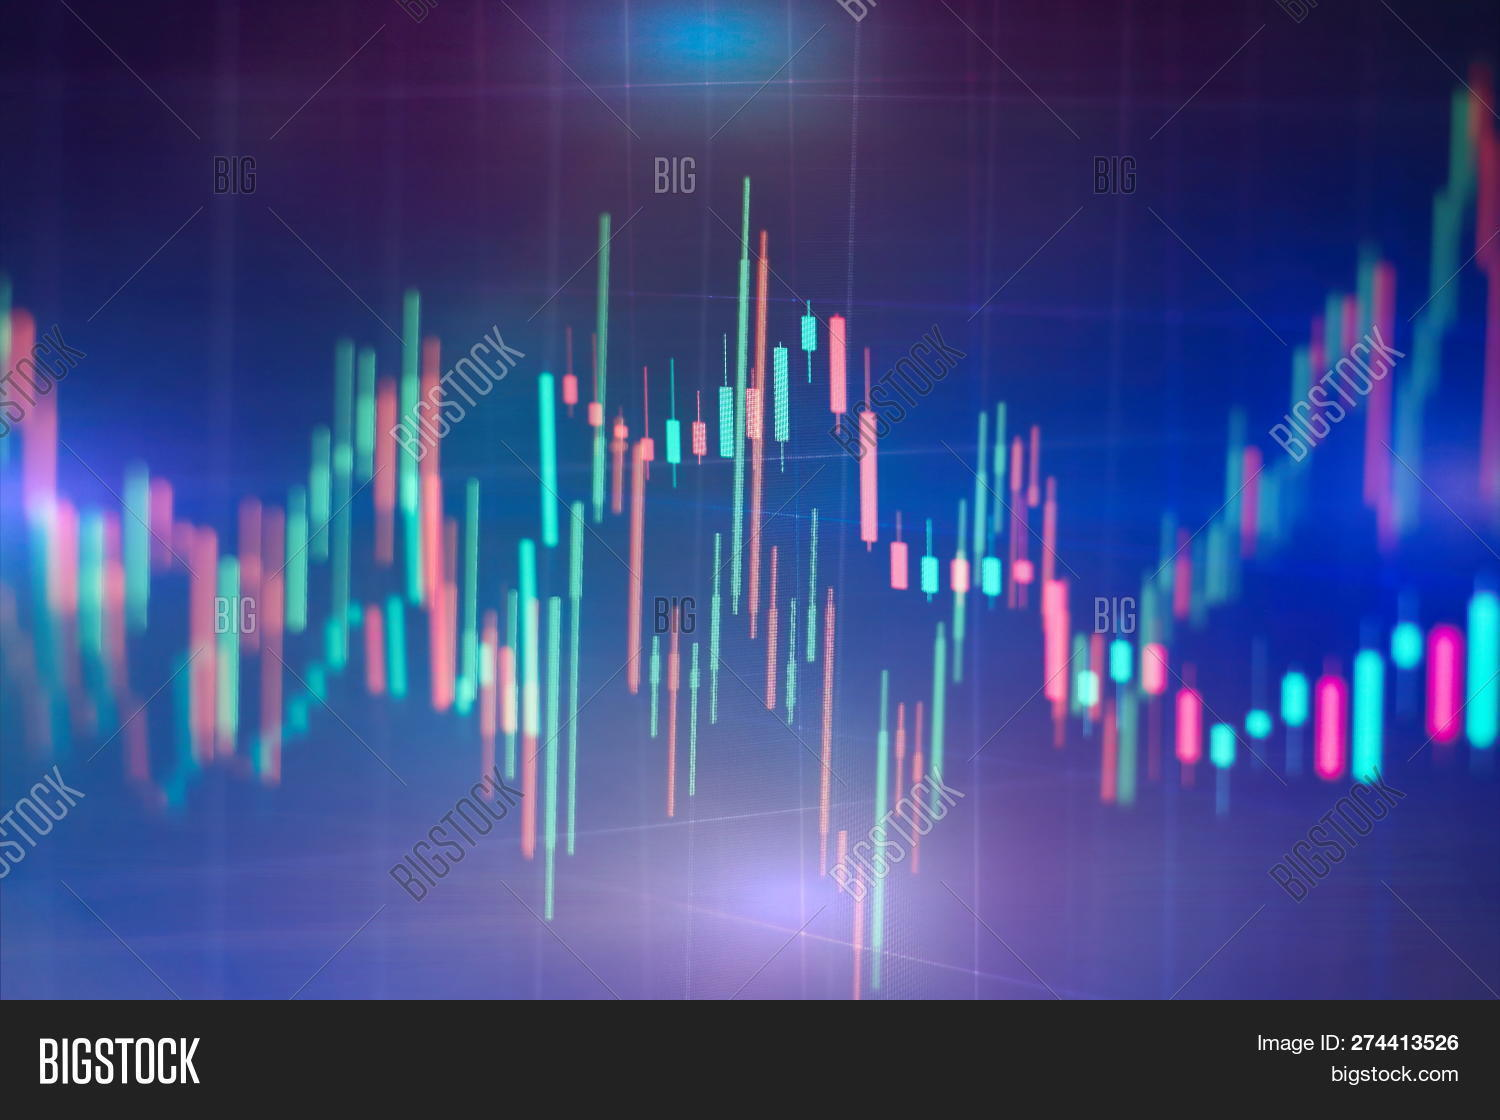 abstract,analysis,arrow,background,balance,black,business,capital,care,celebration,concept,currency,data,design,digital,dollar,economics,economy,fall,finance,forex,global,graph,health,illustration,light,market,marketing,medical,medicine,night,price,science,shine,sign,stock,symbol,technology,texture,tracking,trading,wave,white